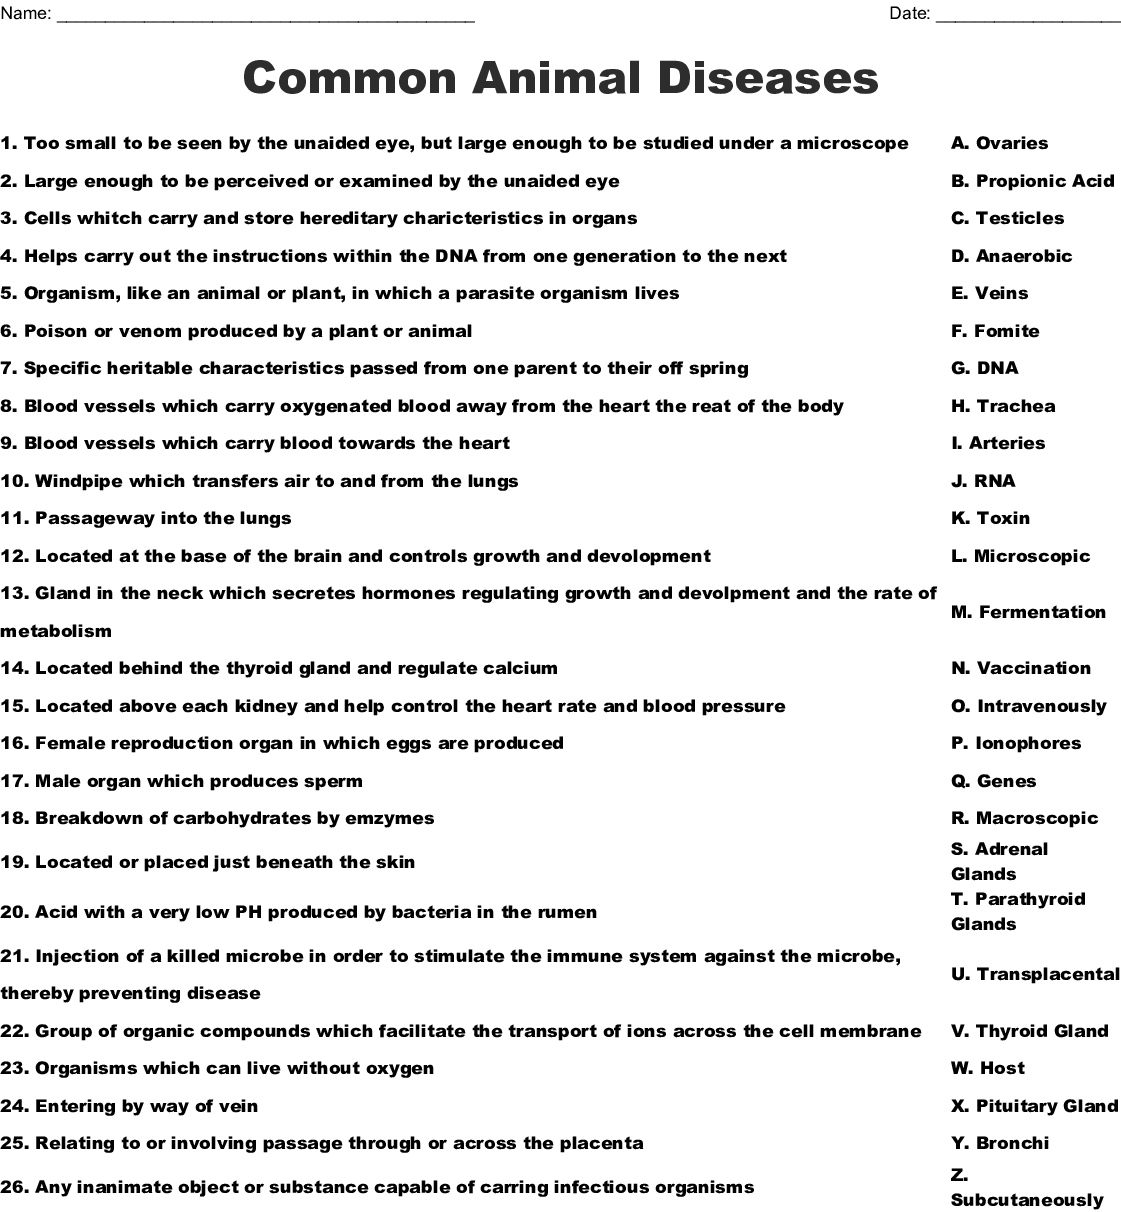 Common Animal Diseases Worksheet